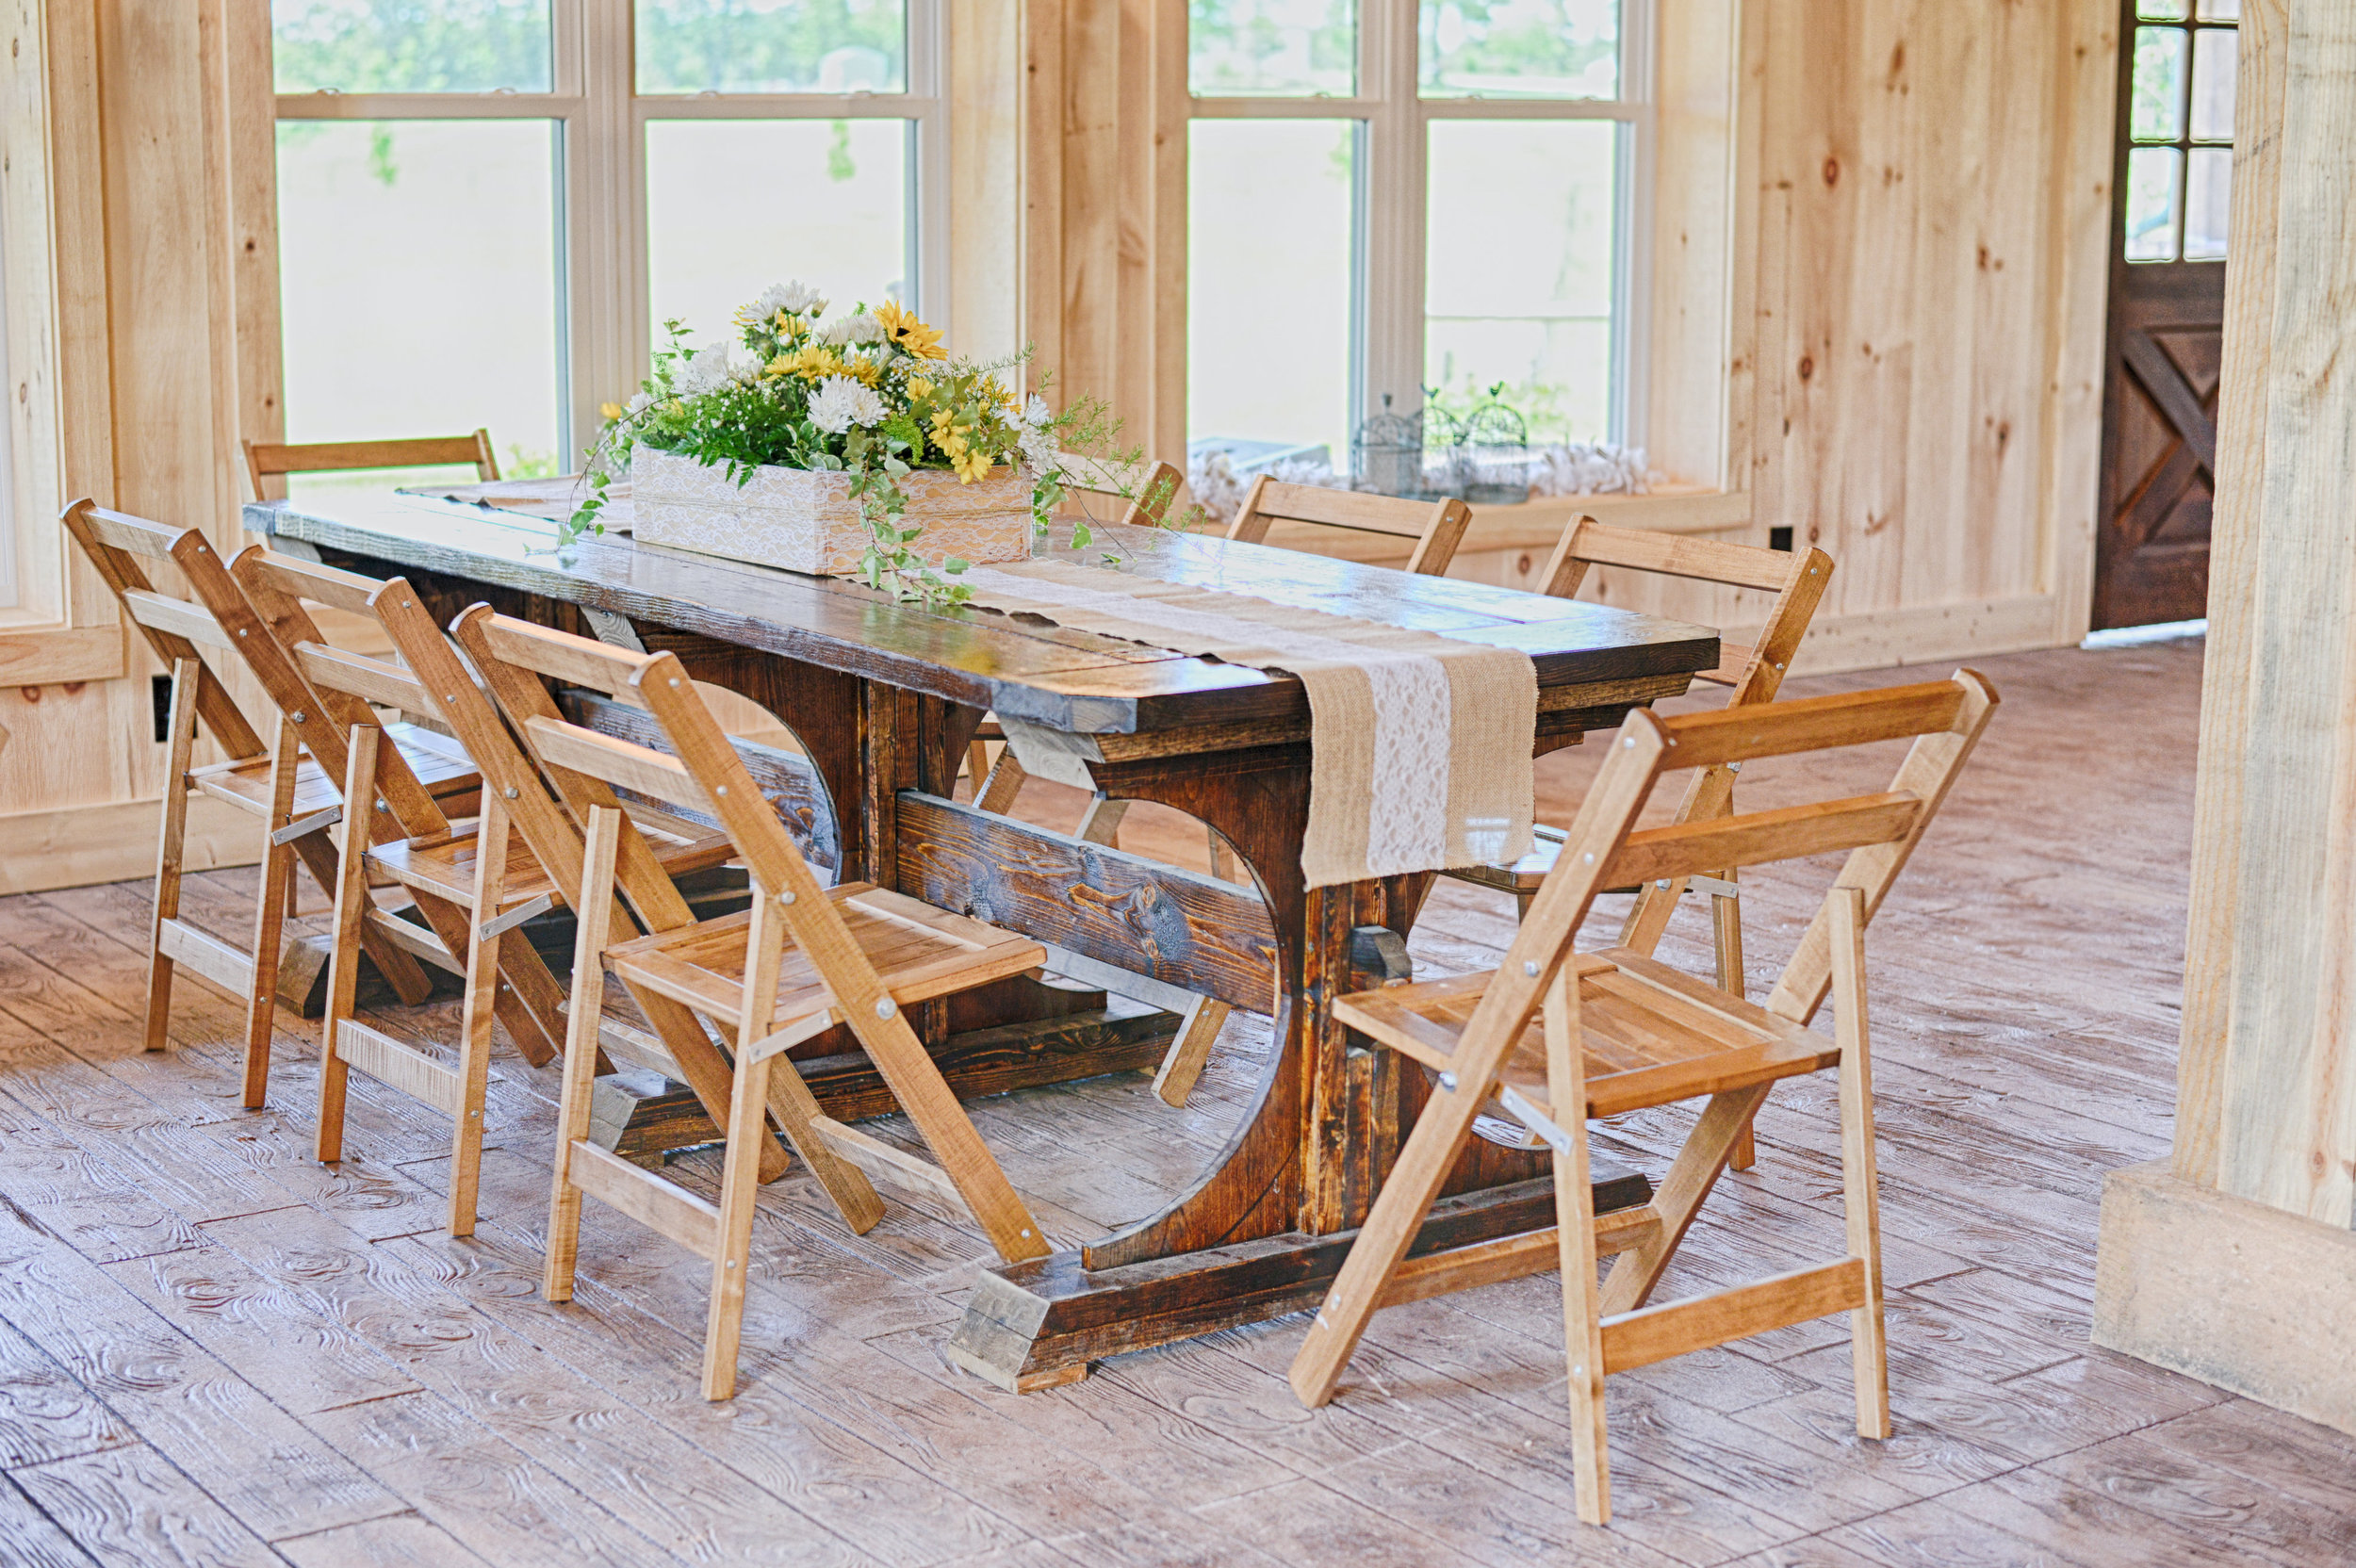 Our tables and chairs are all handmade by local craftsmen